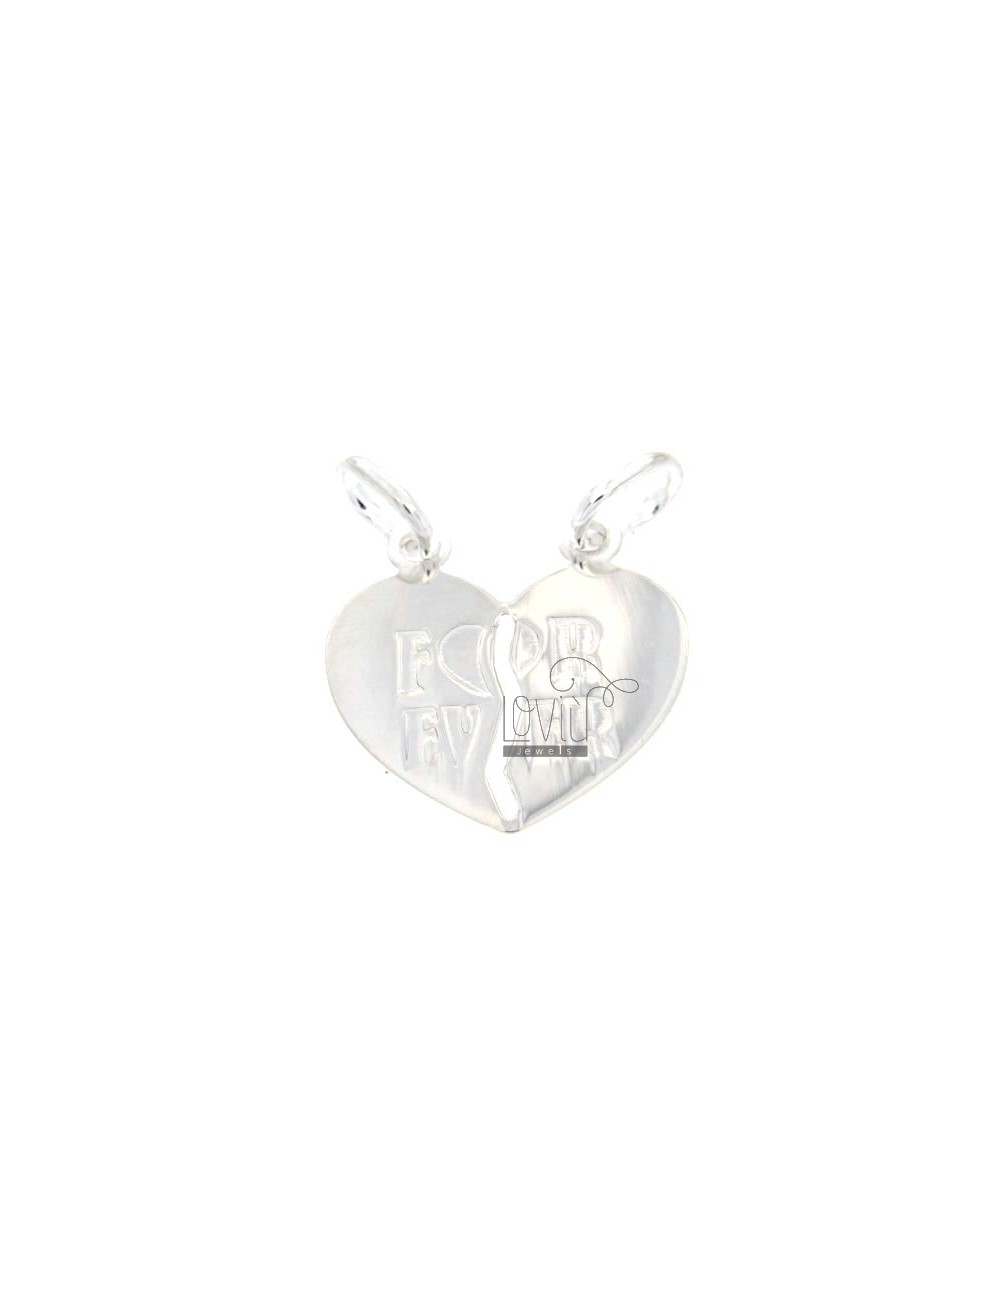 PENDANT HEART DIVIDED BY WRITTEN FOR EVER ENGRAVED SILVER 925 ‰